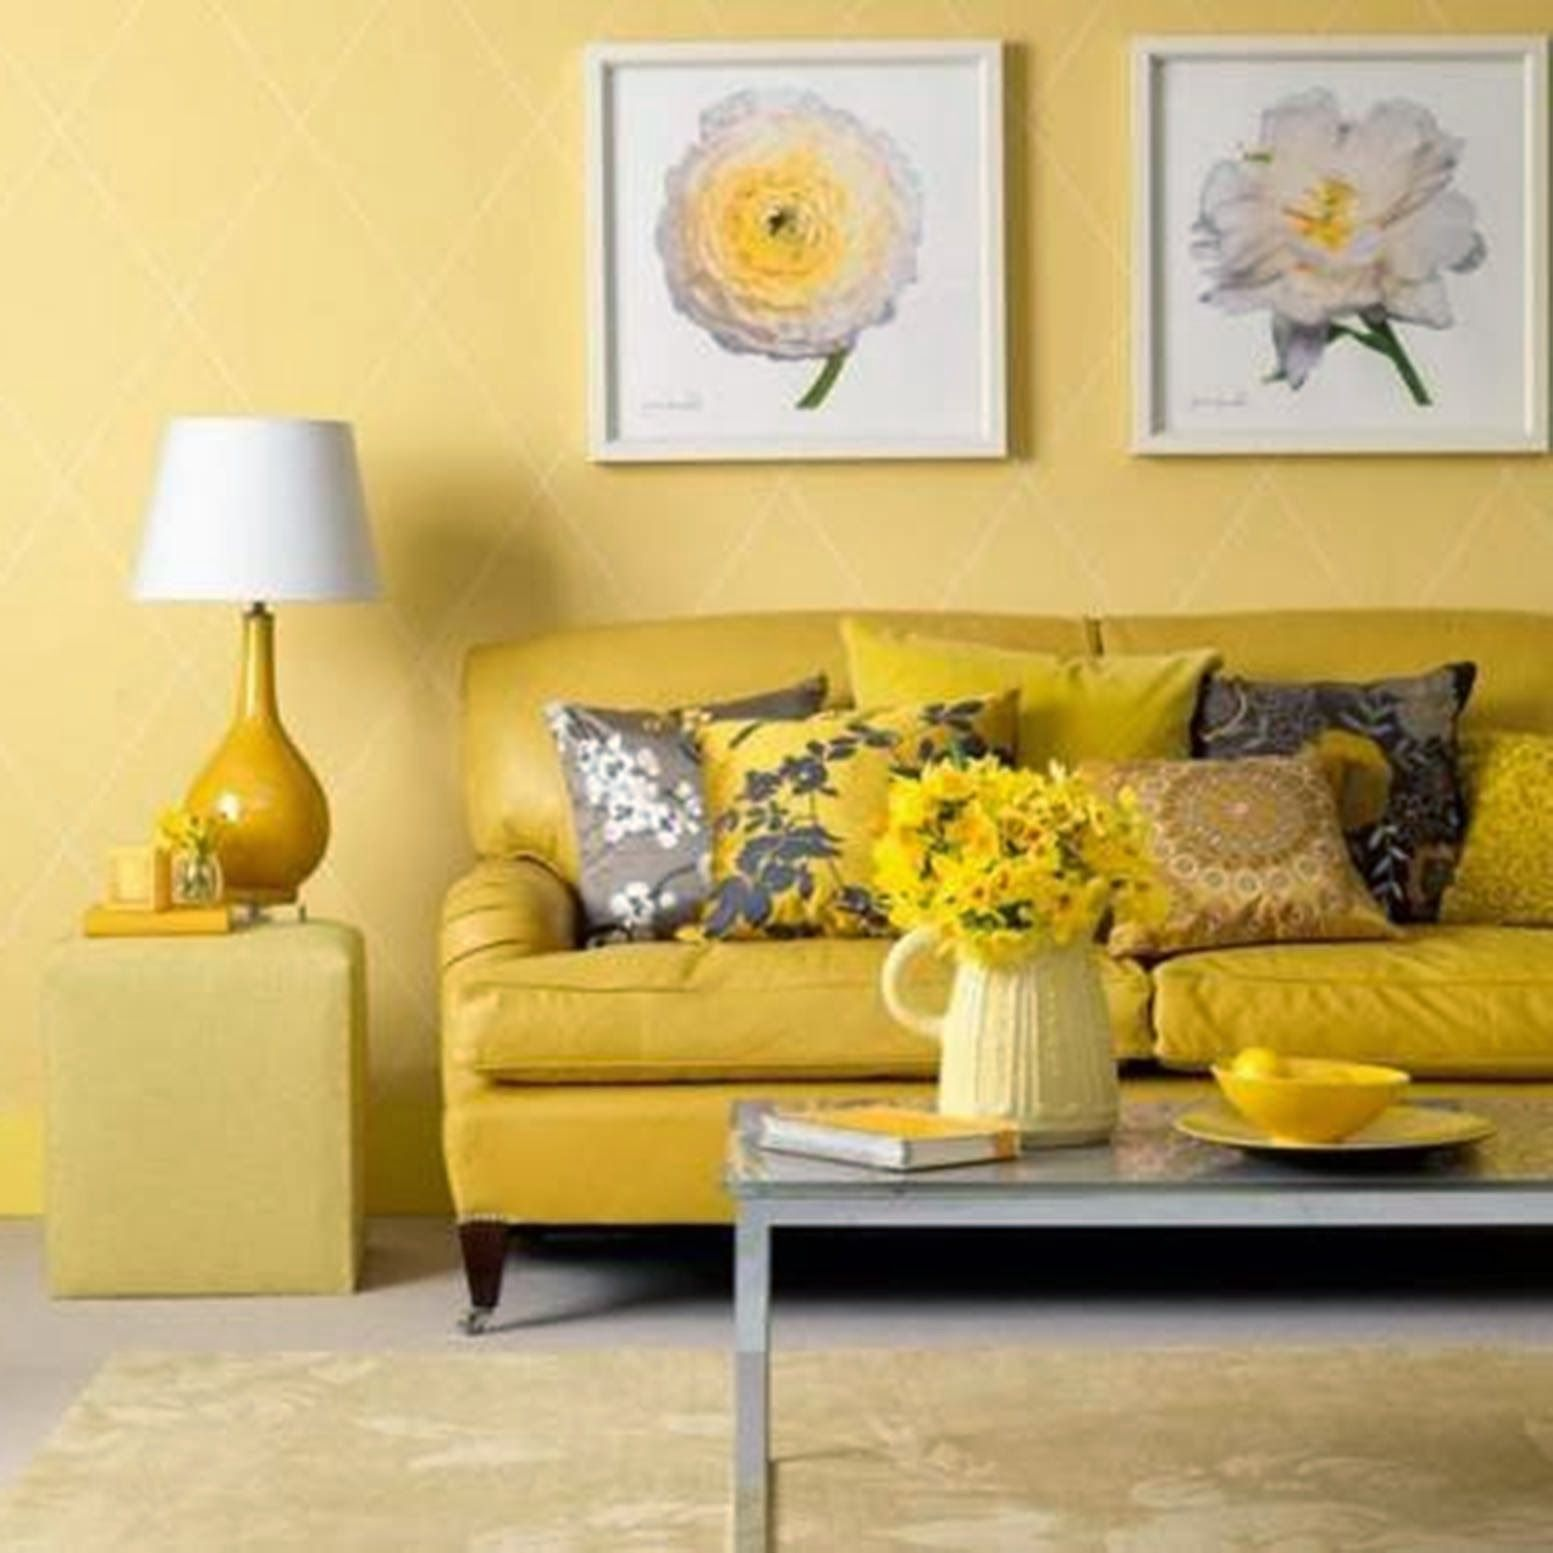 Agreeable yellow wall colors for living room paint ideas with white artwork over couch in girls areas decors also lovable rose portray faux leather two seater rh pinterest